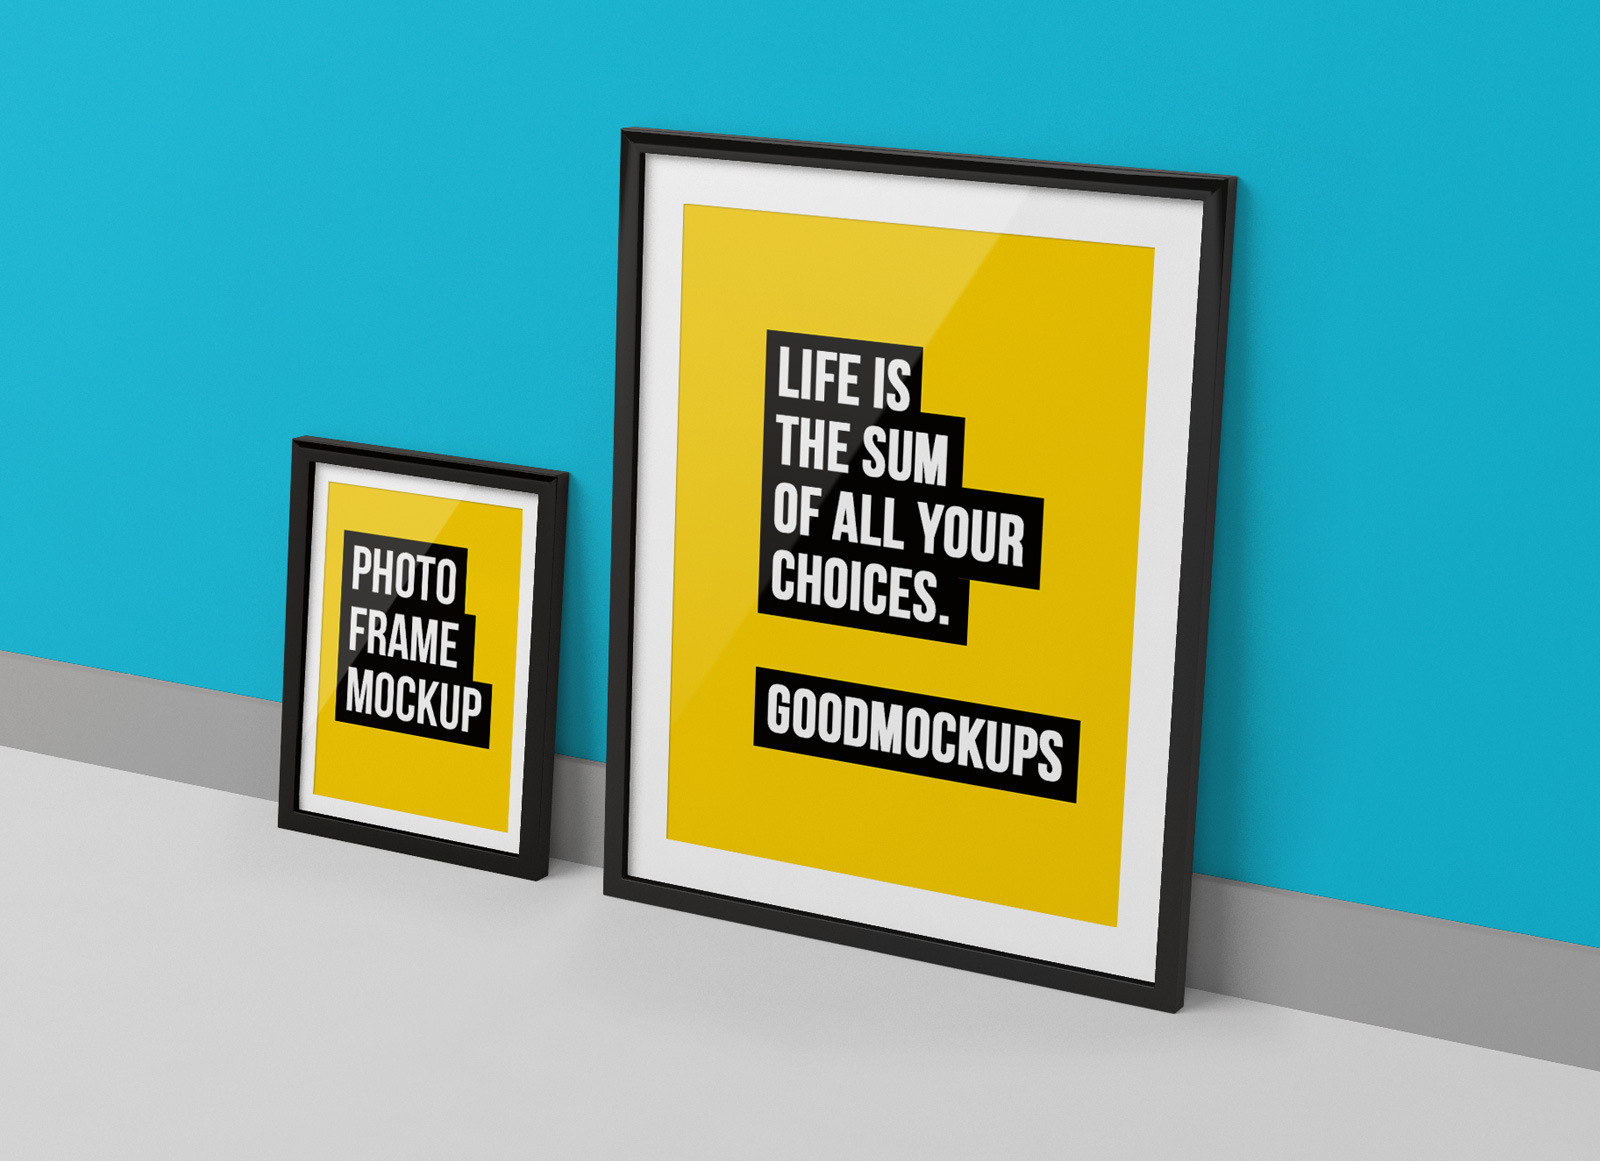 Free-Photo-Frame-Mockup-PSD-for-Lettering,-Photos-&-Typography